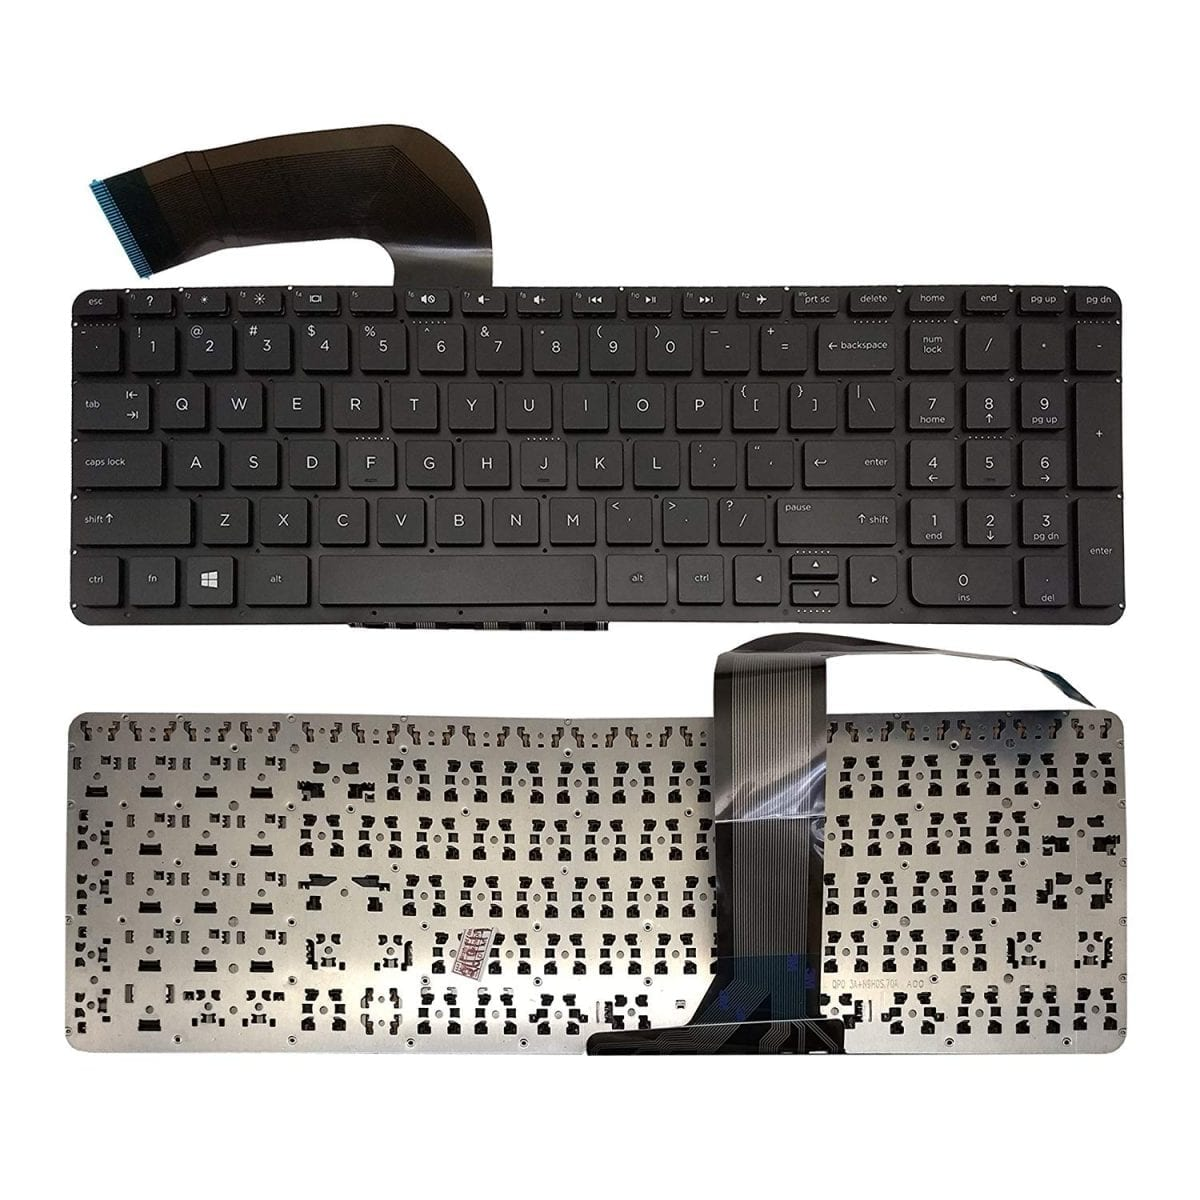 New US keyboard HP Pavilion 17-f131ds 17-f132ds 17-f133ds 17-f134ds 17-f135ds